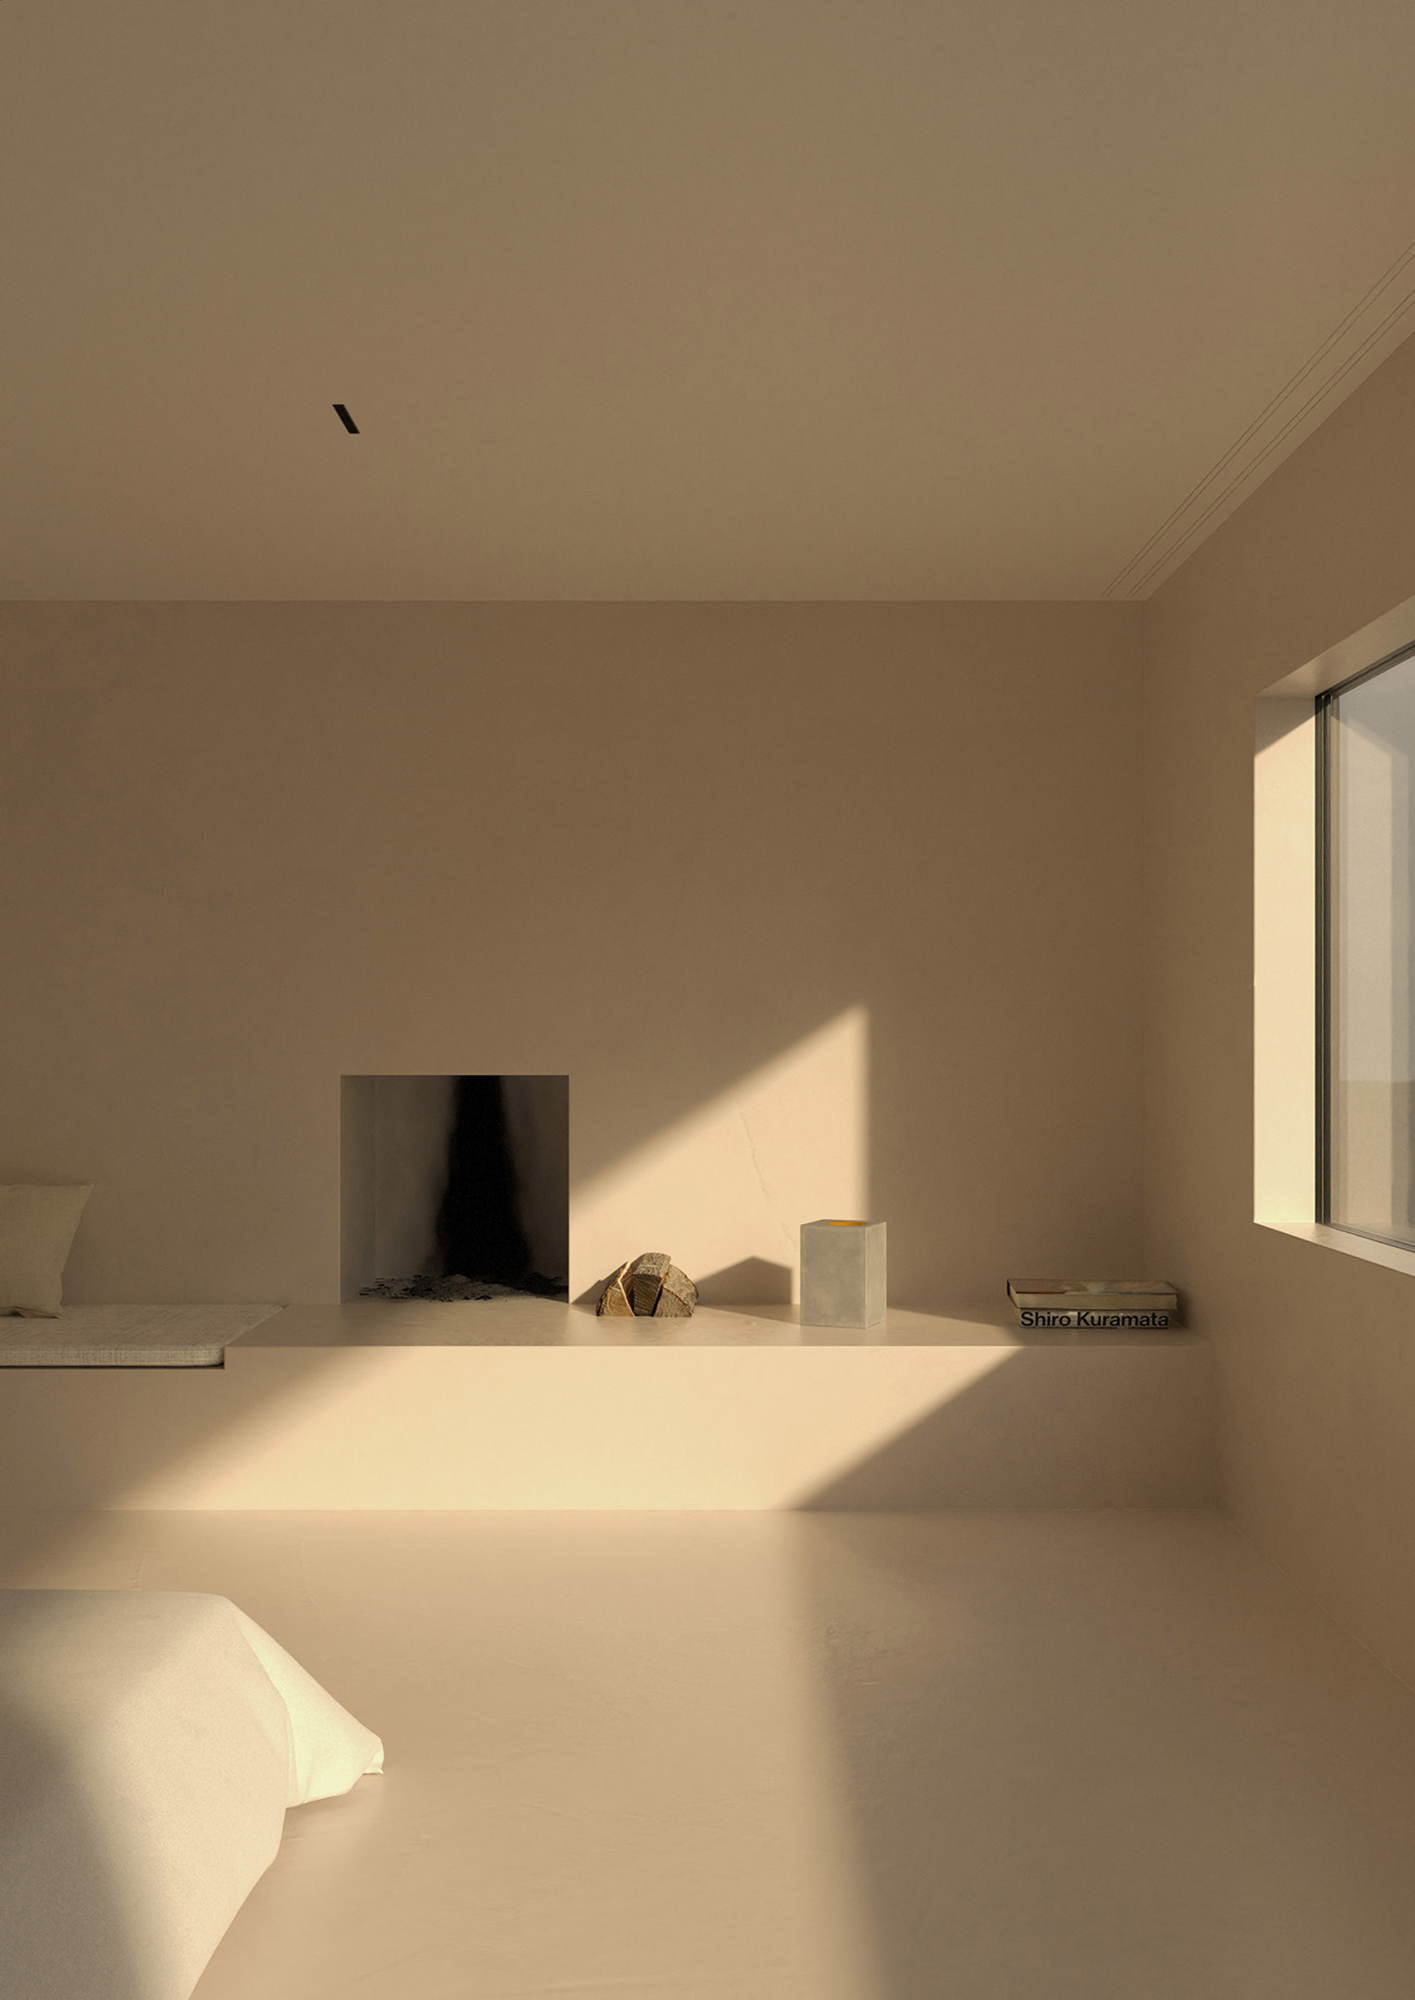 The ultra-minimalist fireplace featured in the